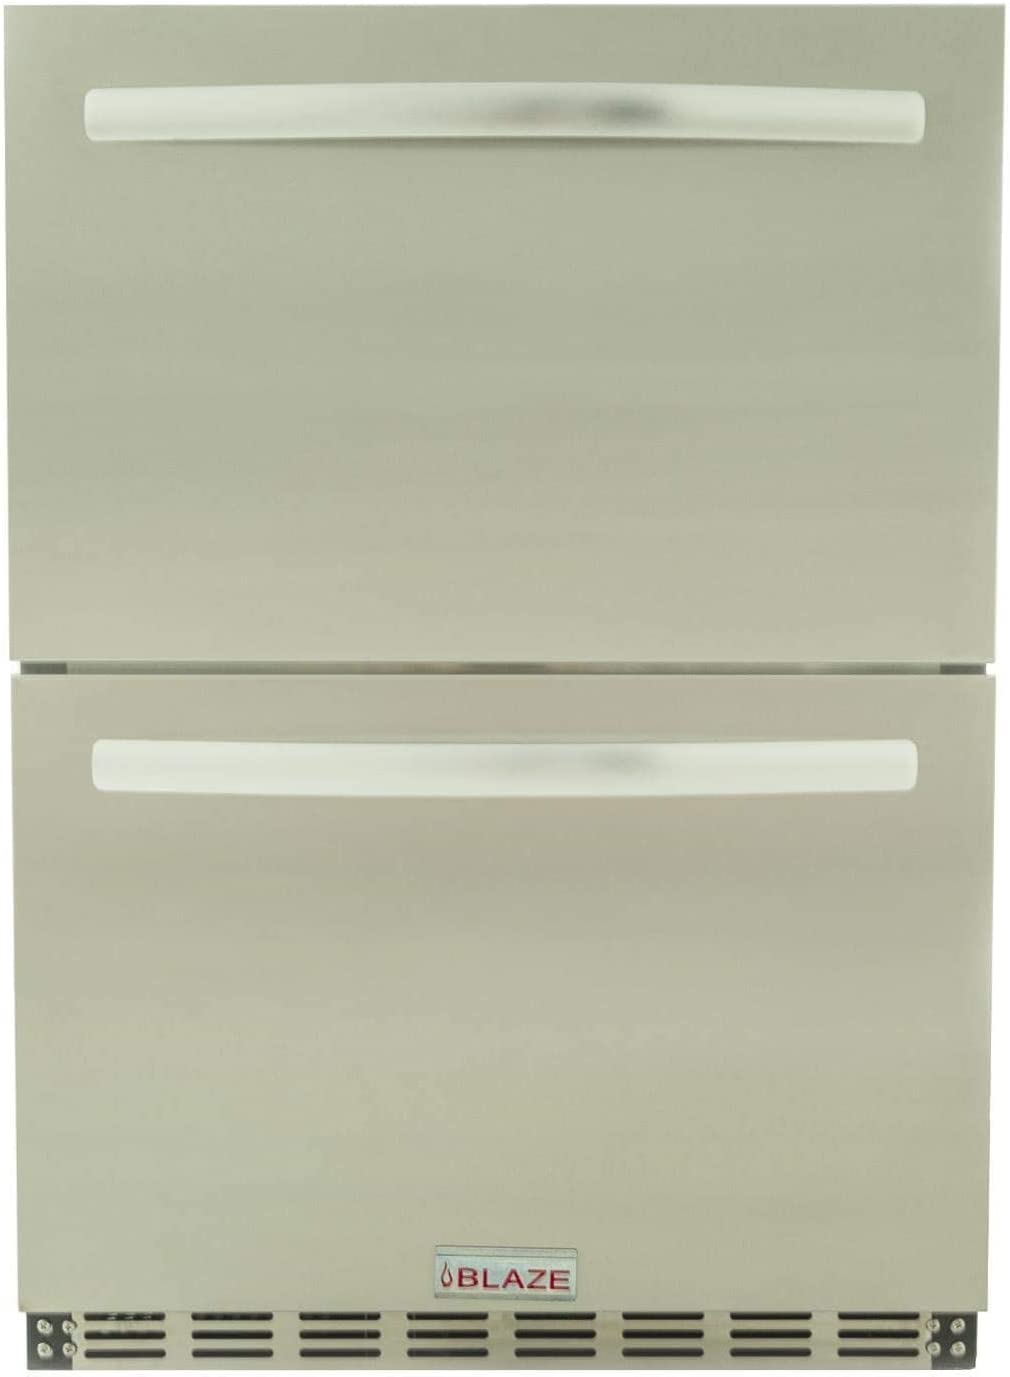 Blaze 23.5-Inch 5.1 Cu. Ft. Outdoor Rated Stainless Steel Double Drawer Refrigerator - BLZ-SSRF-DBDR5.1